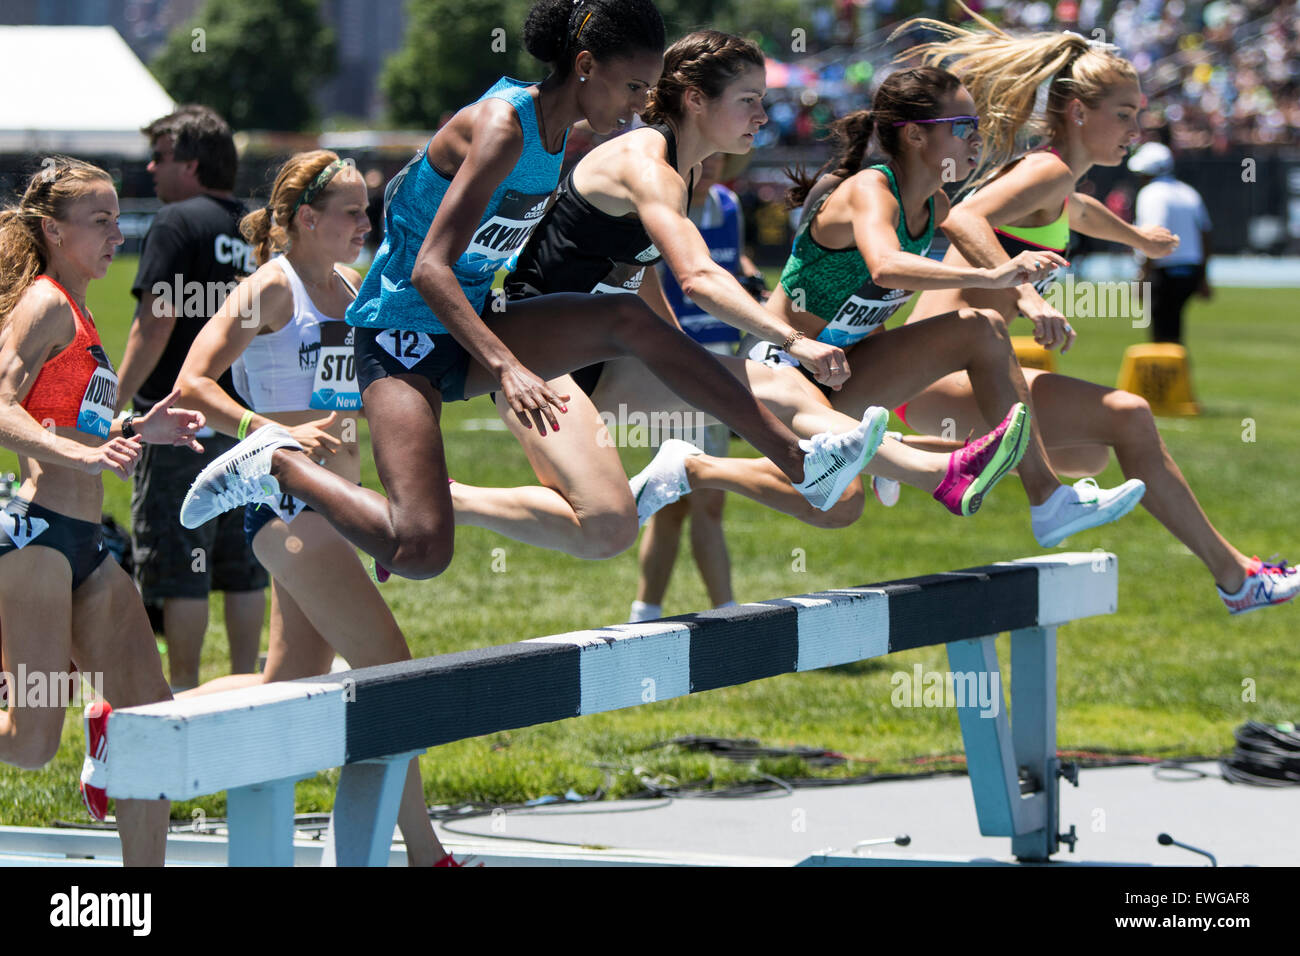 Women's 3000m Steeplechase at the 2015 Adidas NYC Diamond League Grand Prix Stock Photo